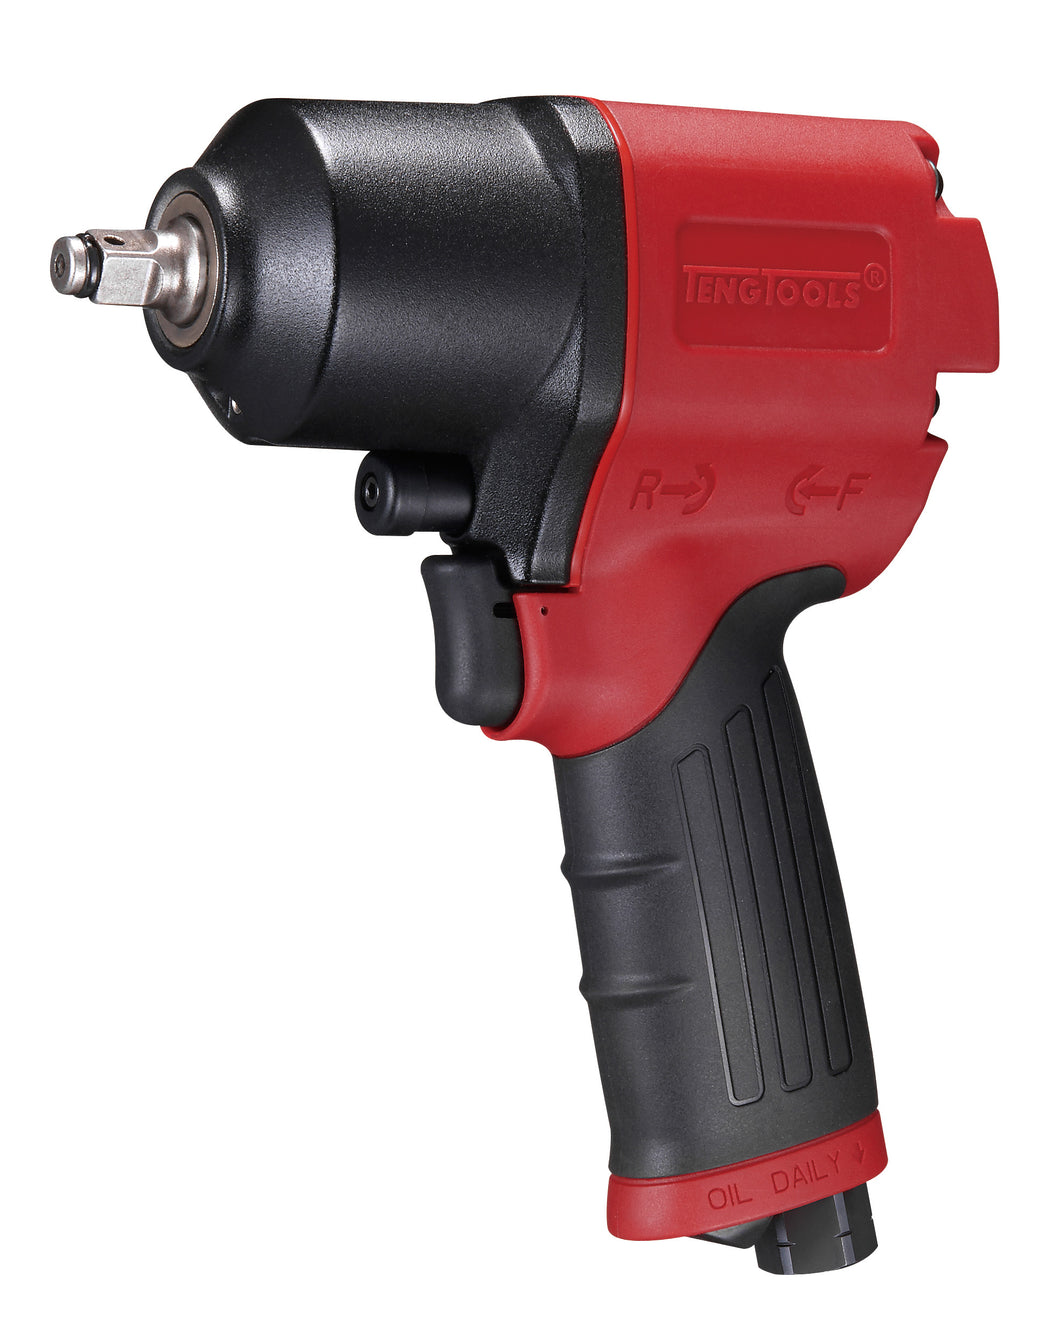 TENG Air Impact Wrench Composite 3/8